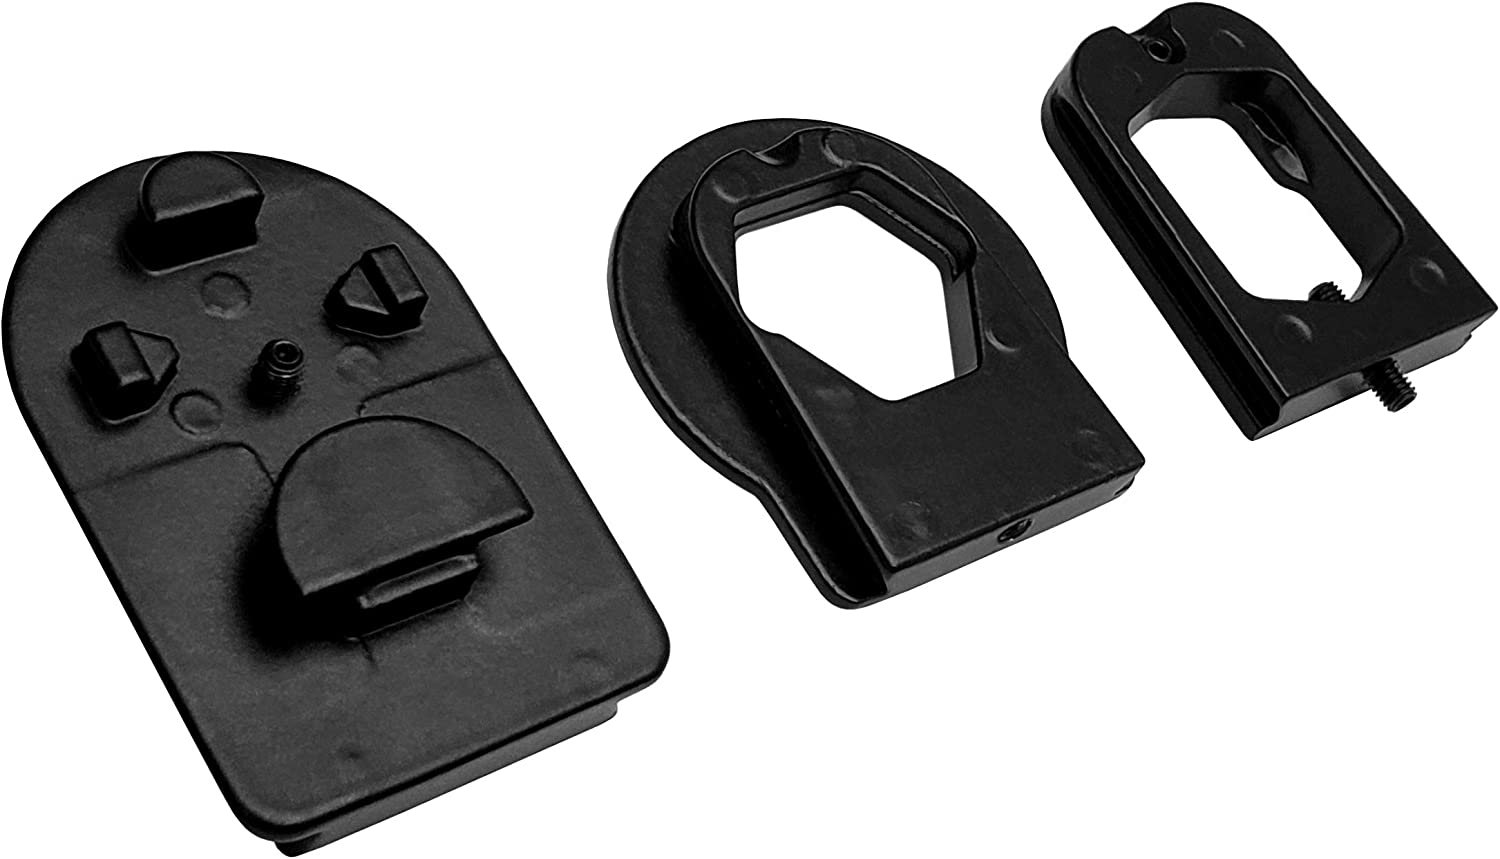 Ford Audi Master Tailgaters Rear View Mirror Three Metal Bracket Adapters for Volkswagen Dodge Honda